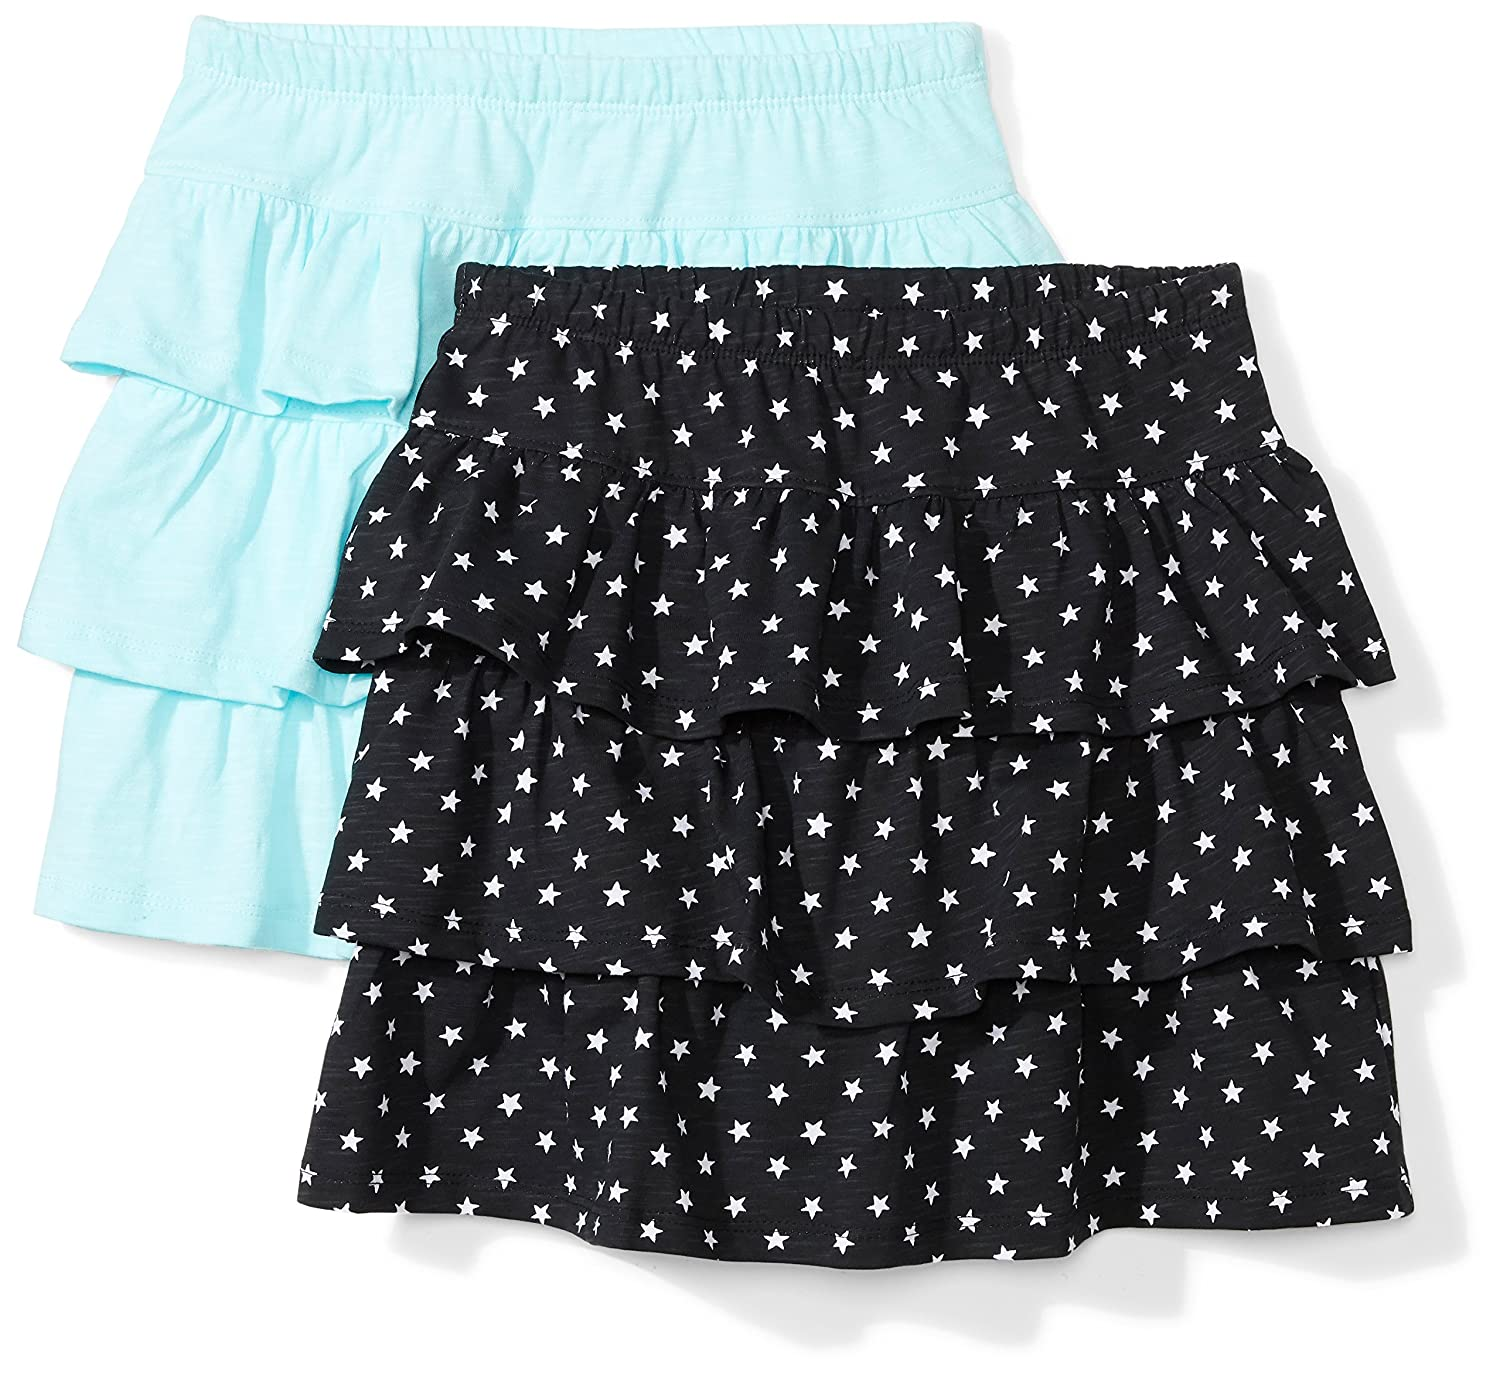 Spotted Zebra Girls 2-Pack Knit Ruffle Scooter Skirts GSZ60032SP18